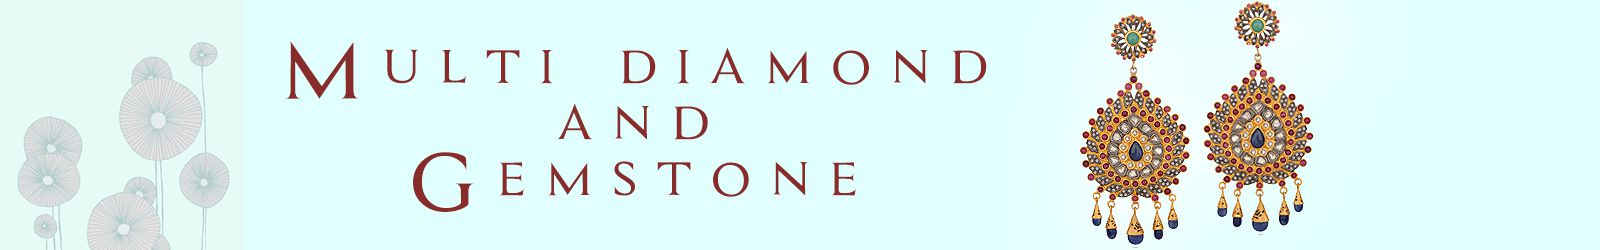 Online Multi Diamond Jewelry Supplier, Store, Shop in Jaipur